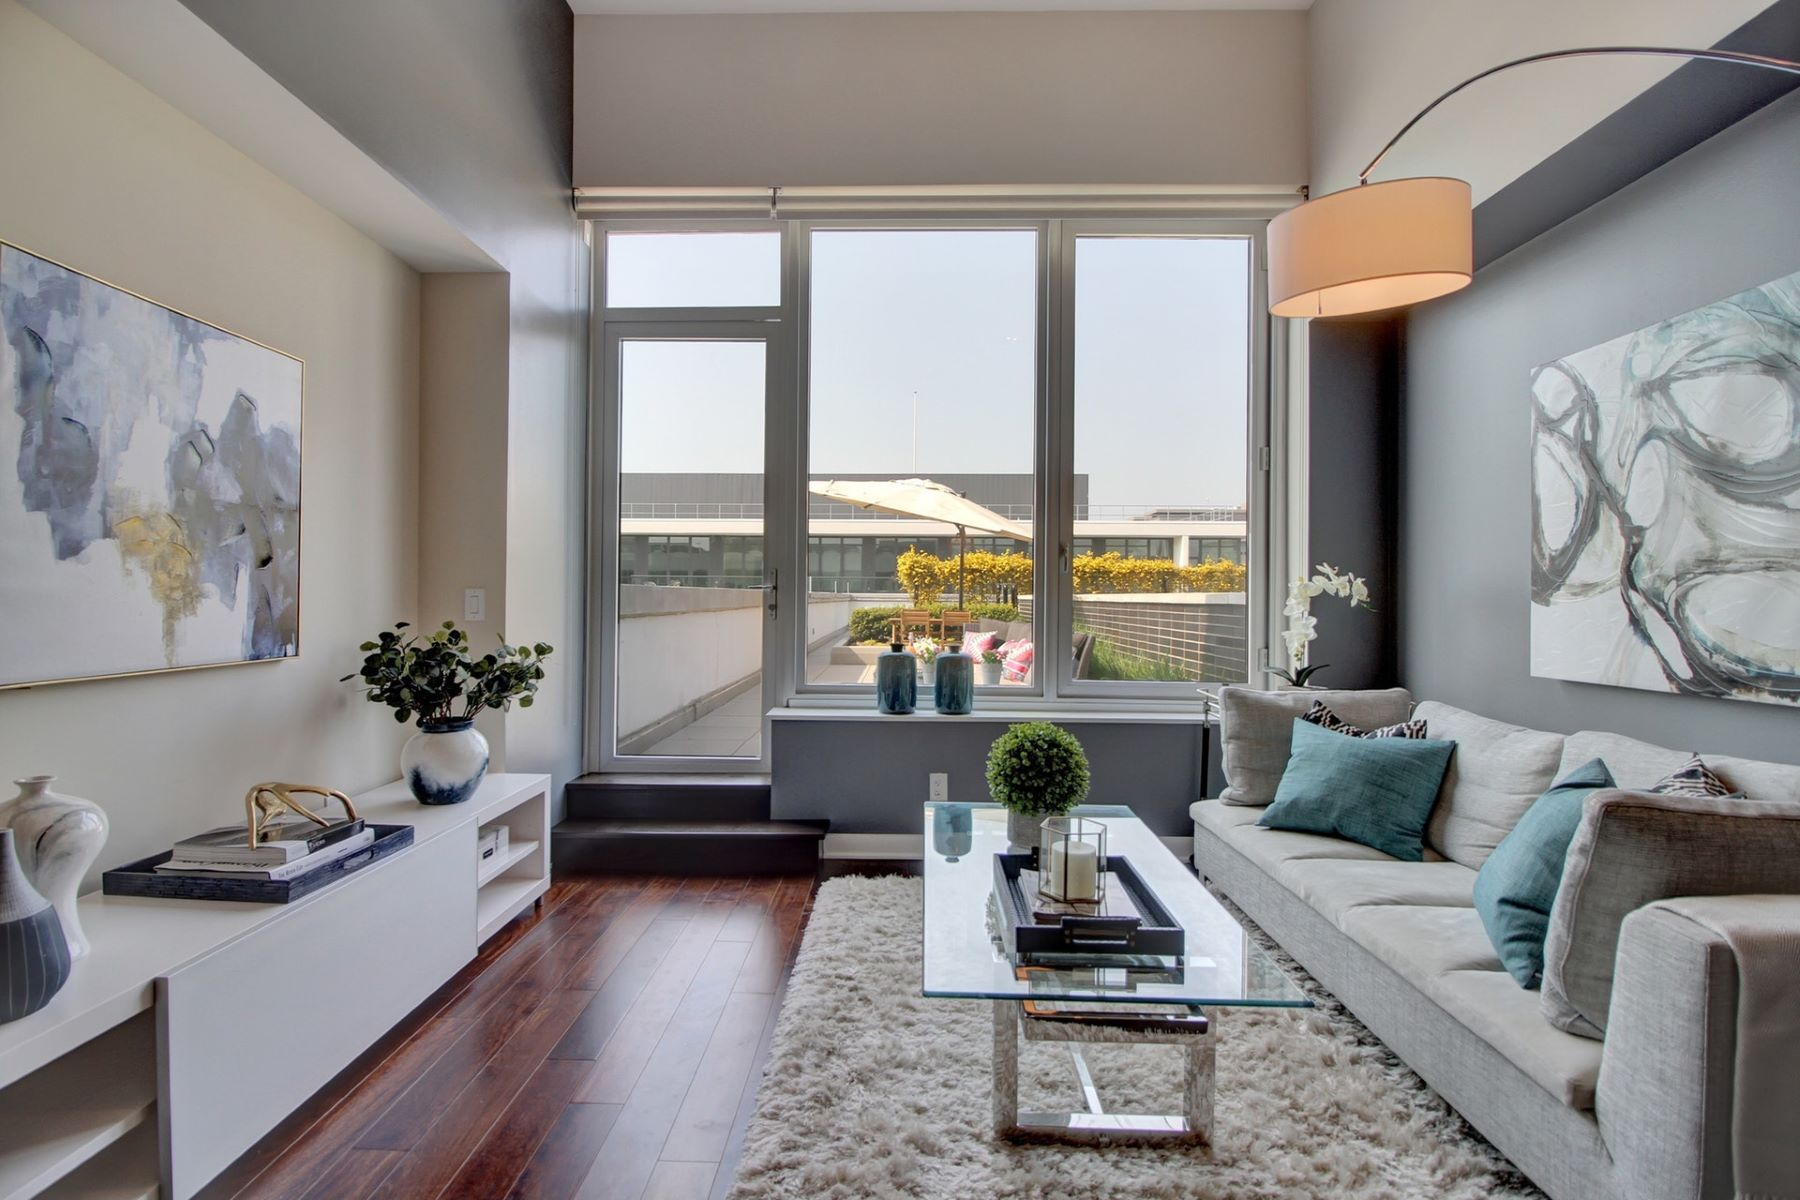 Condominium for Sale at Discover pure luxury in this rare 2 Bedroom / 2 Bathroom penthouse 1000 Ave at Port Imperial #709, Weehawken, New Jersey 07086 United States